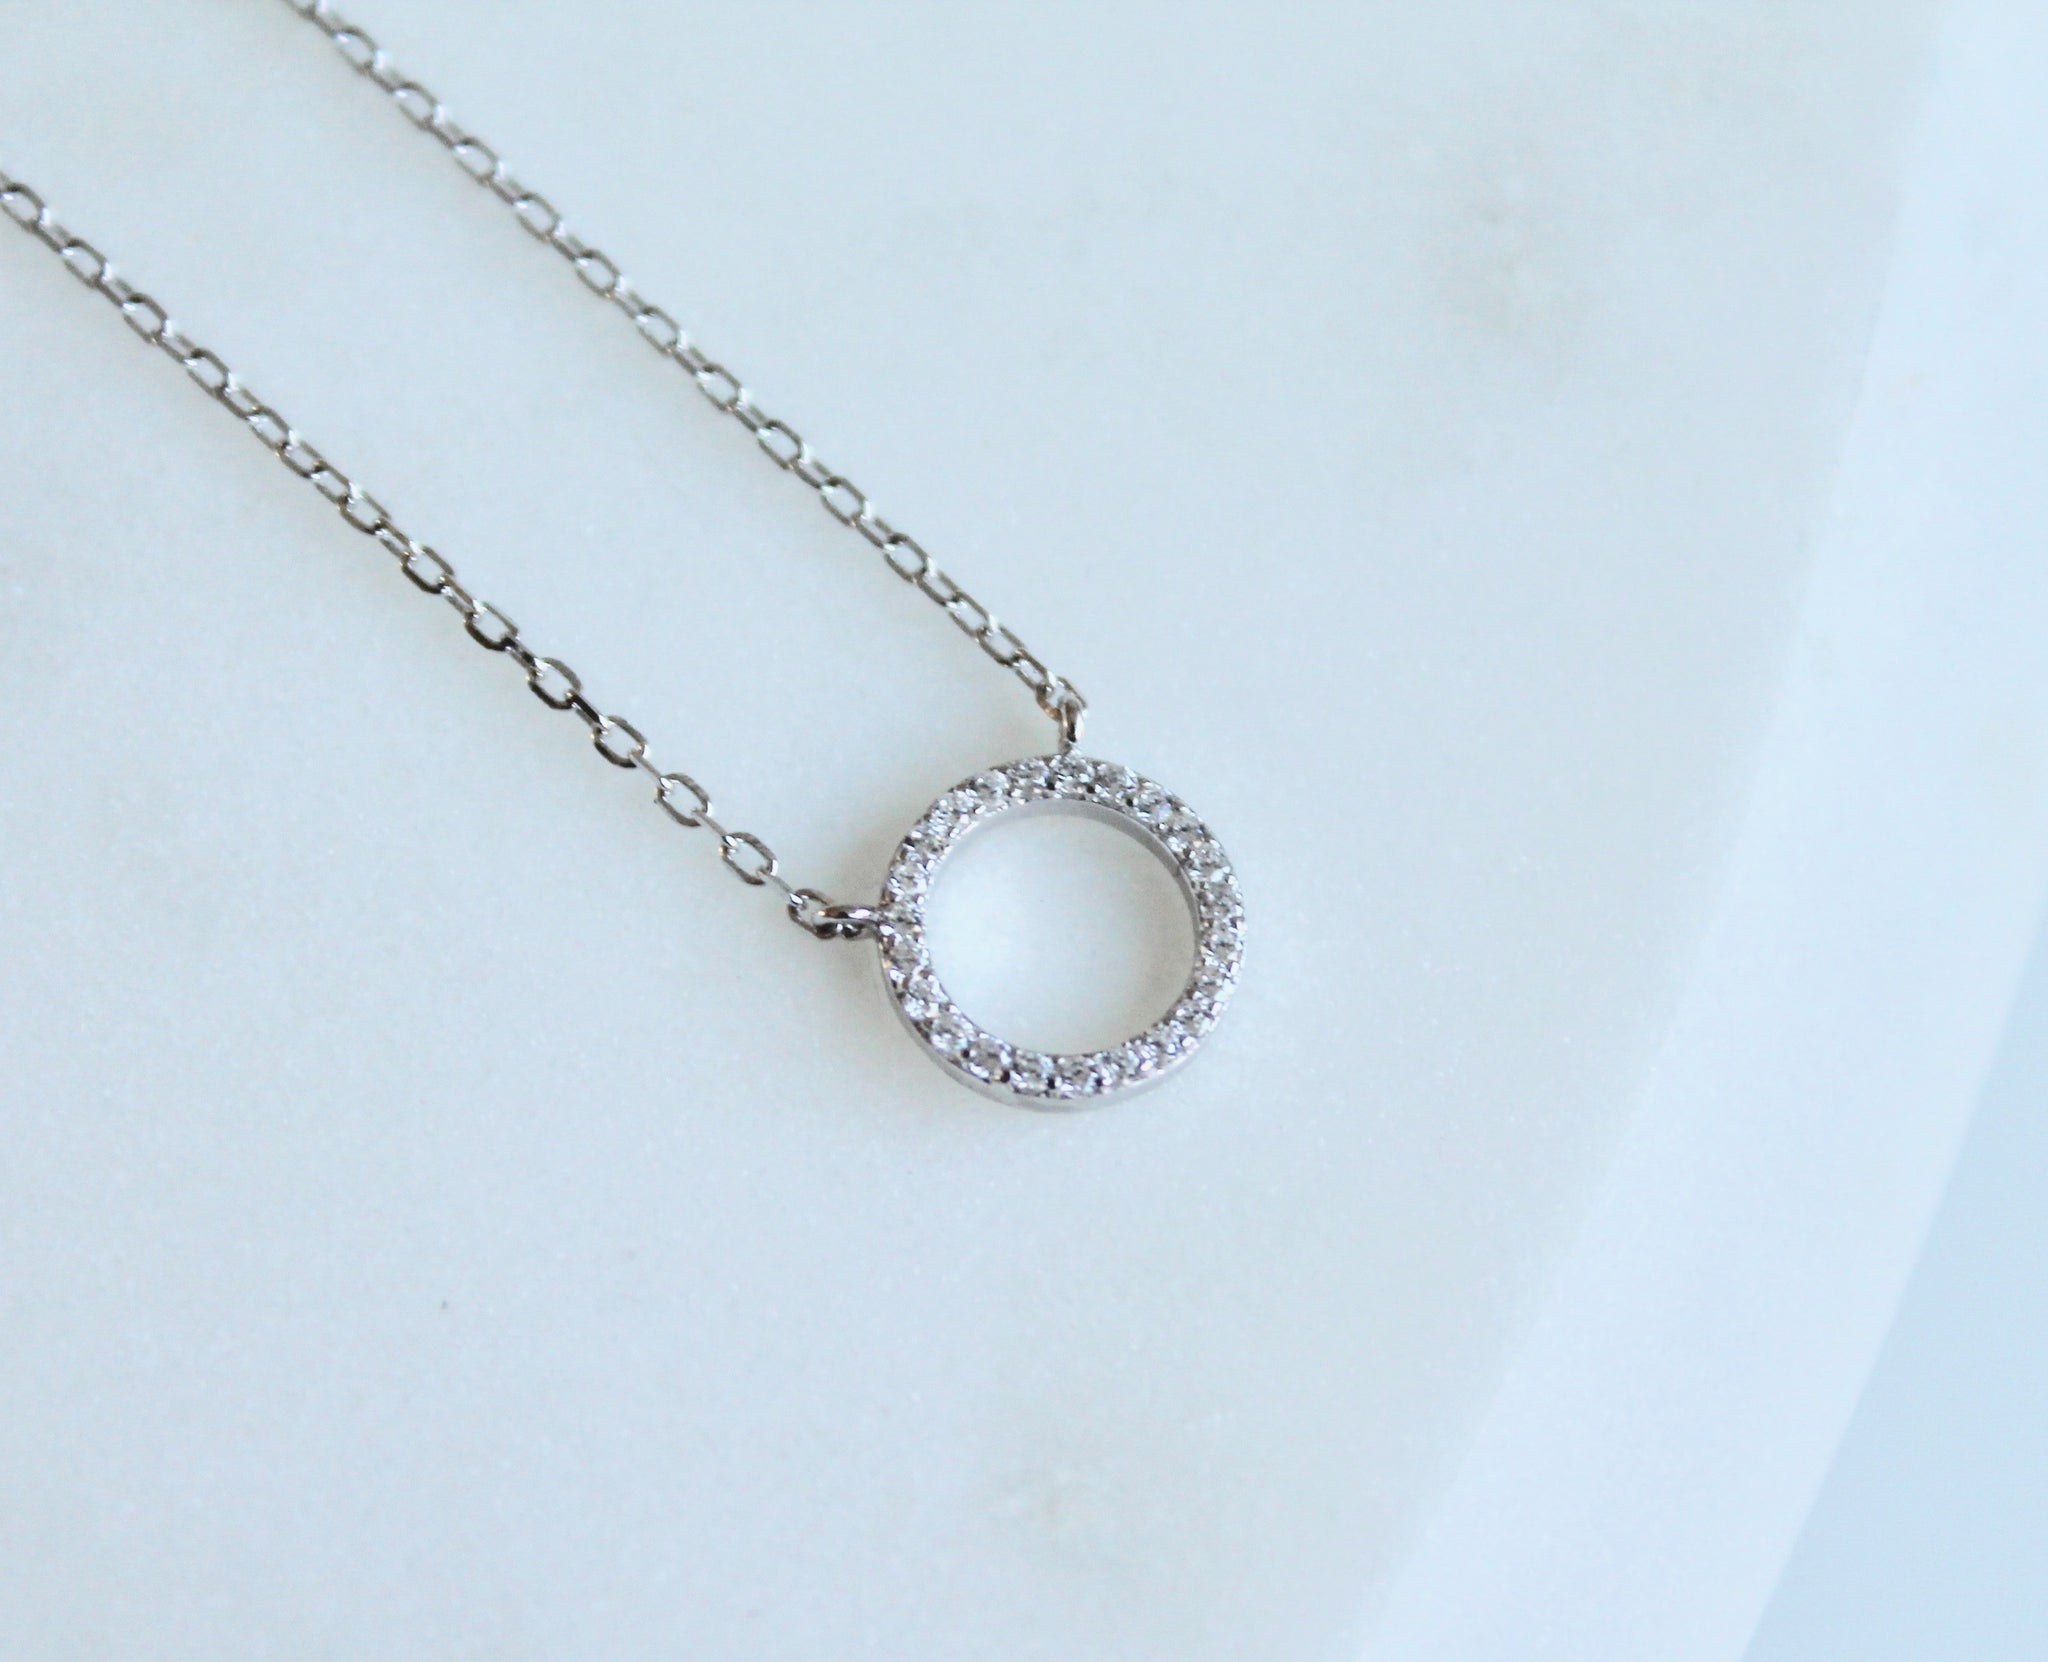 Circle necklace - Lily Lough Jewelry